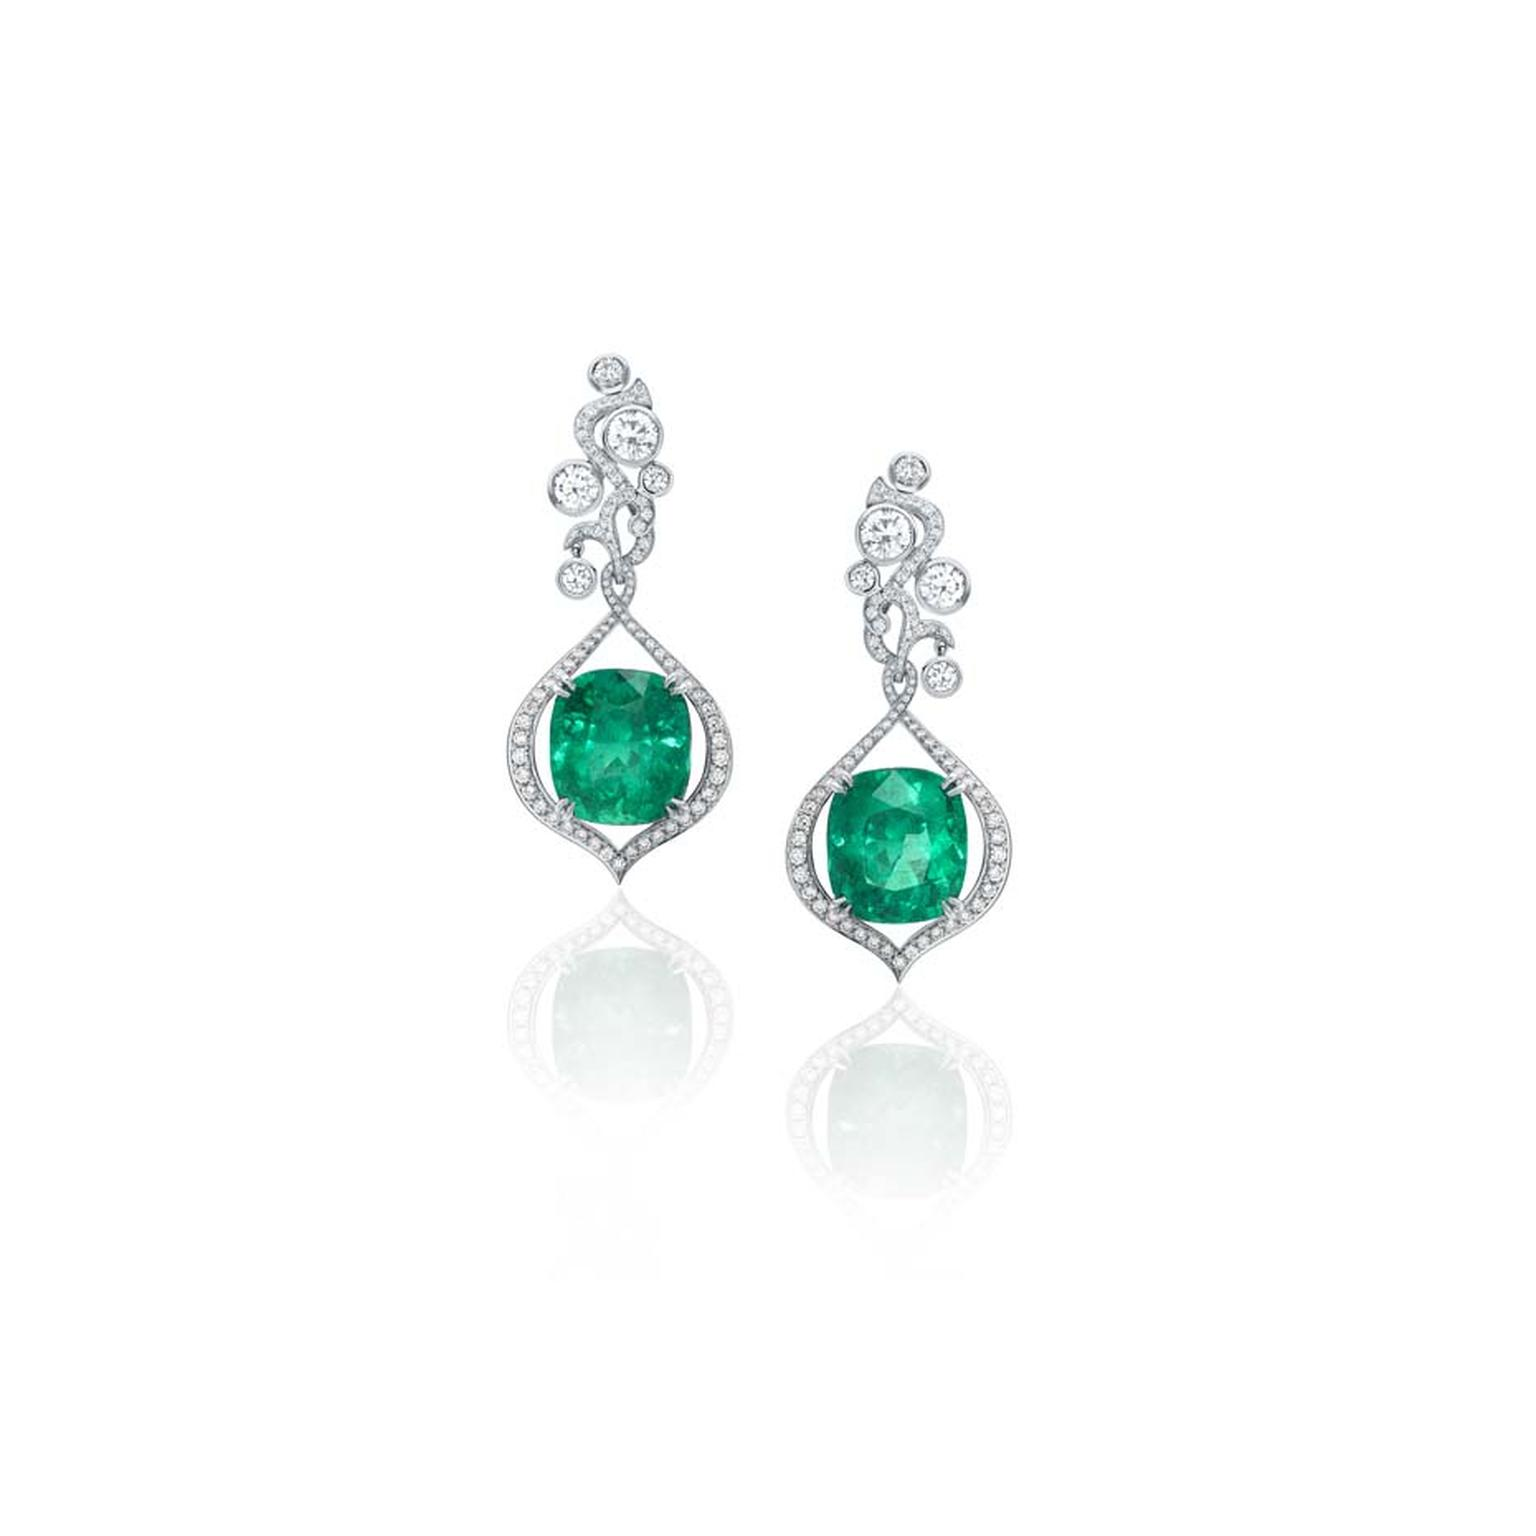 Boodles Greenfire emerald earrings featuring pave diamonds and brilliant-cut diamonds.